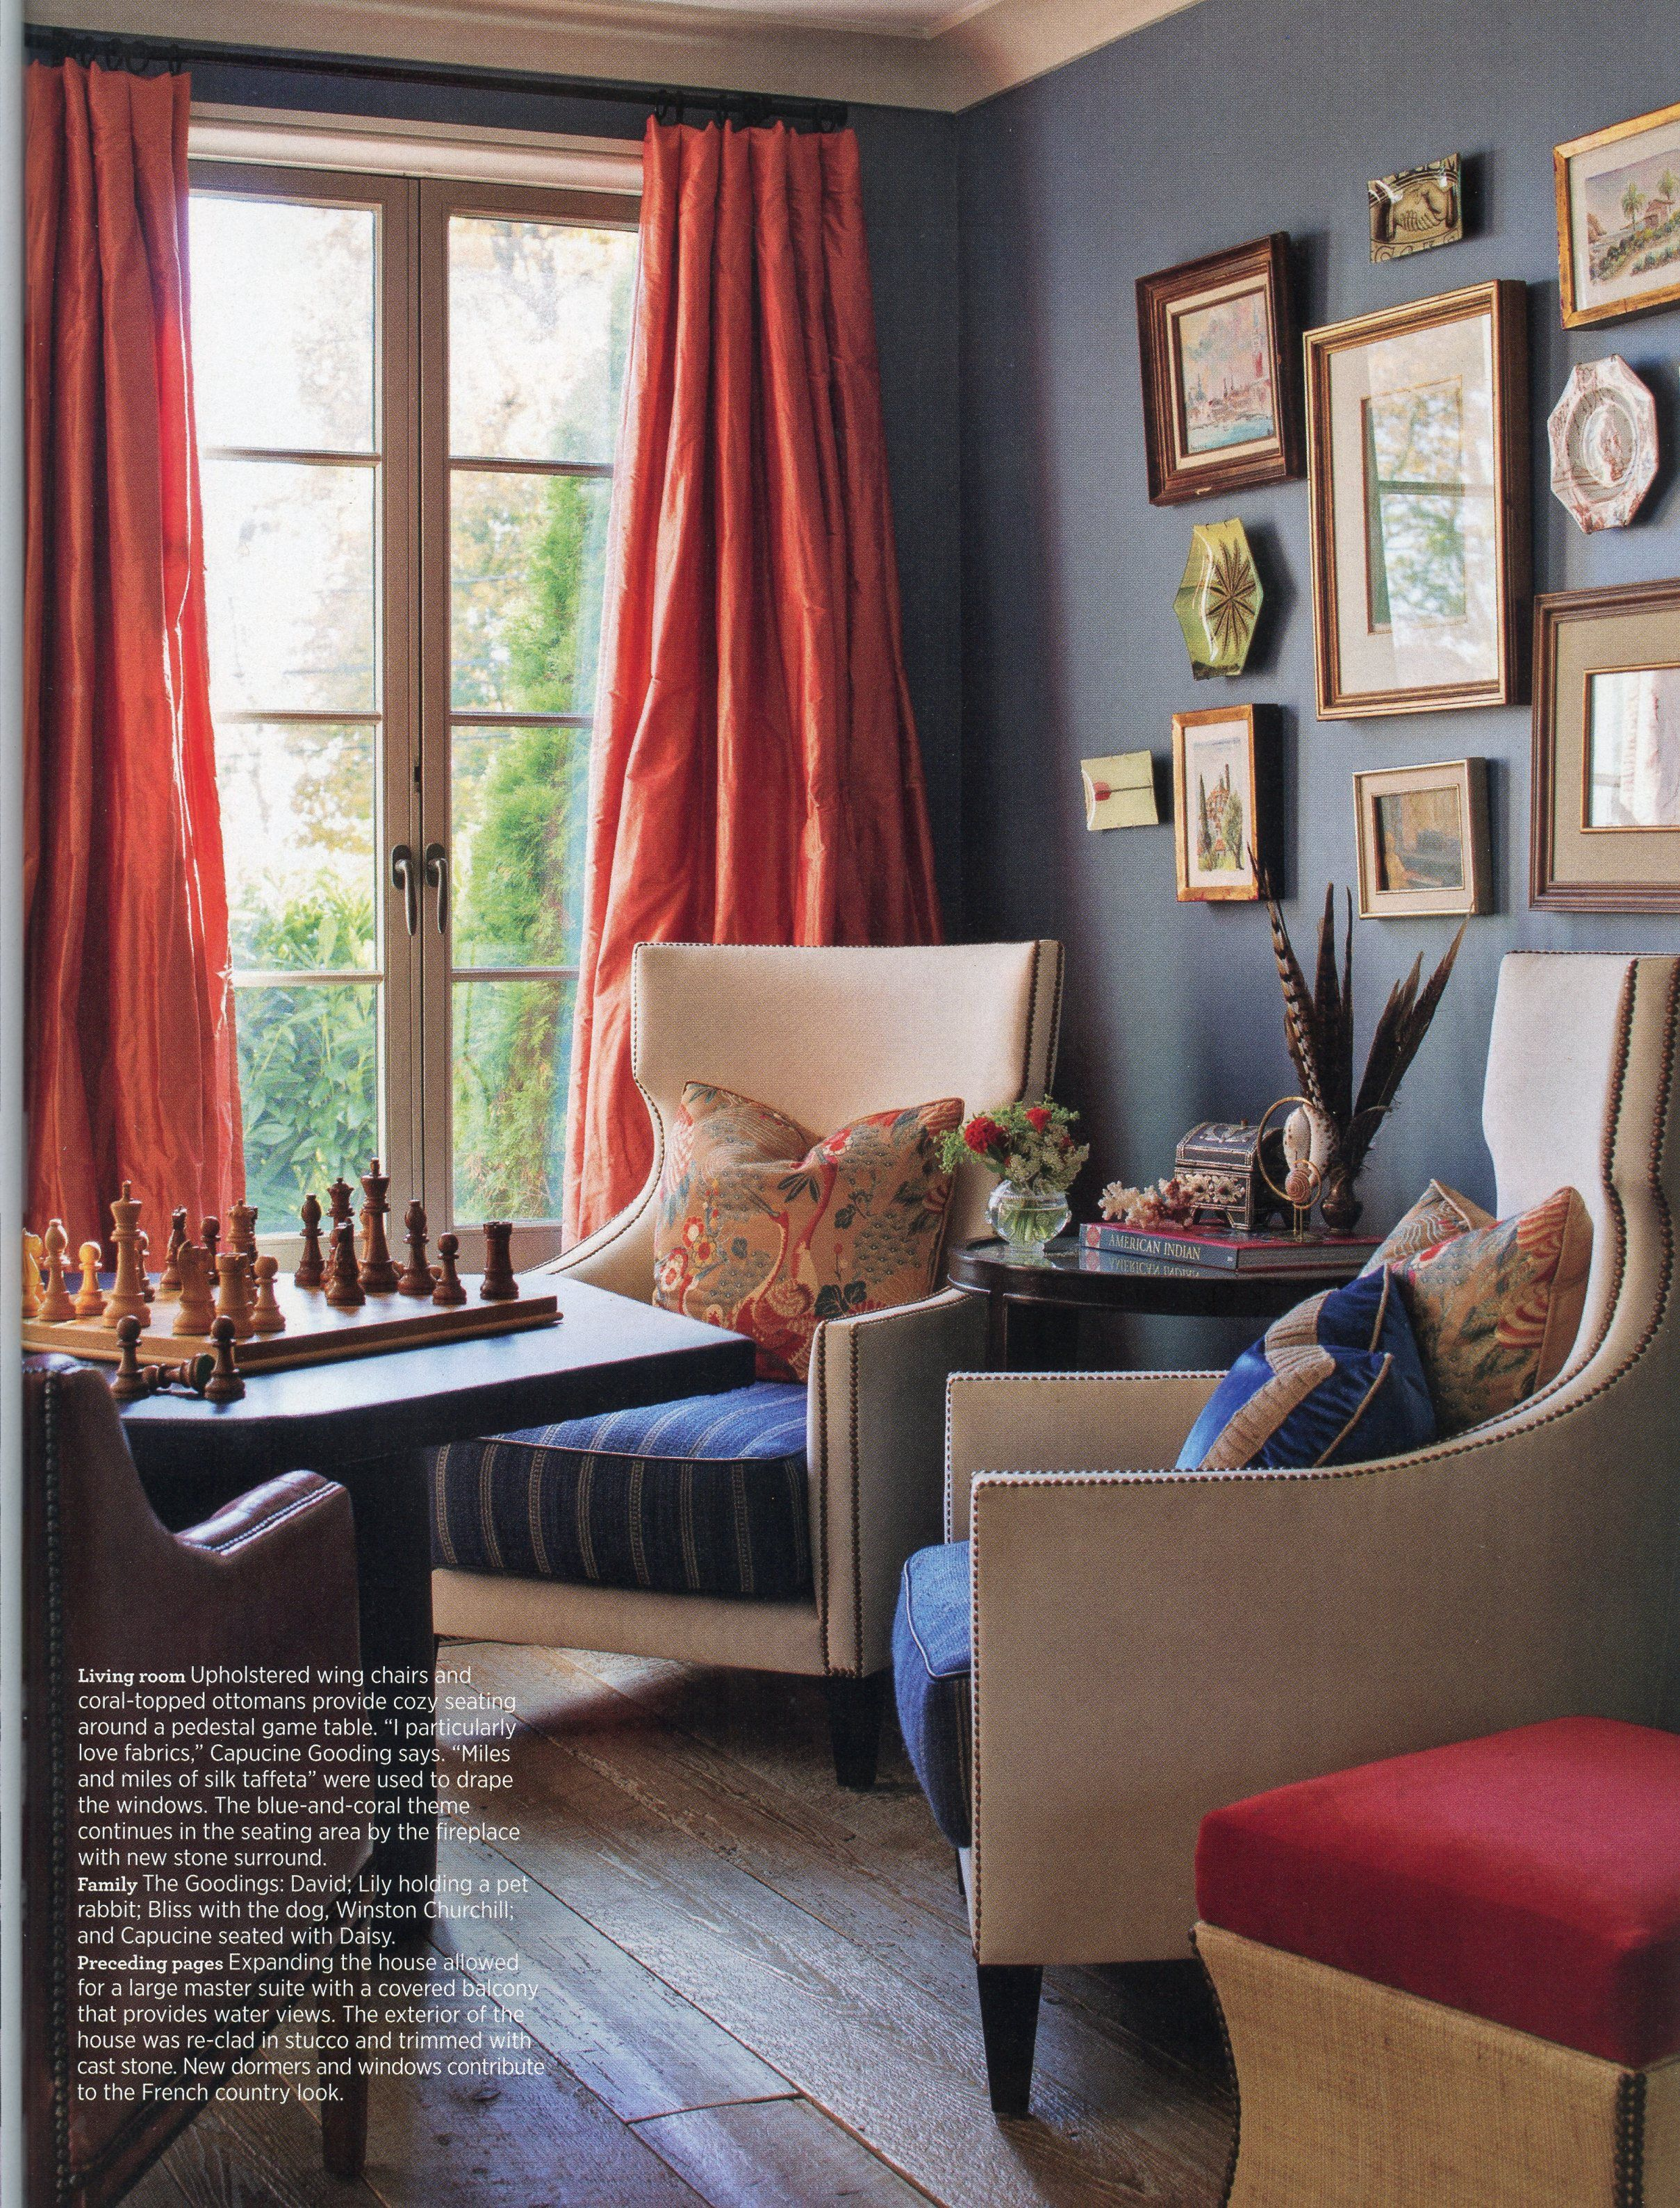 Traditional Home April 2015 Focus On Arm Chair With Navy Seat Cushion And Great Throw Pillow Orang And Navy Color Scheme In 2020 Oranje Gordijnen Interieur Zitkamers #orange #and #cream #living #room